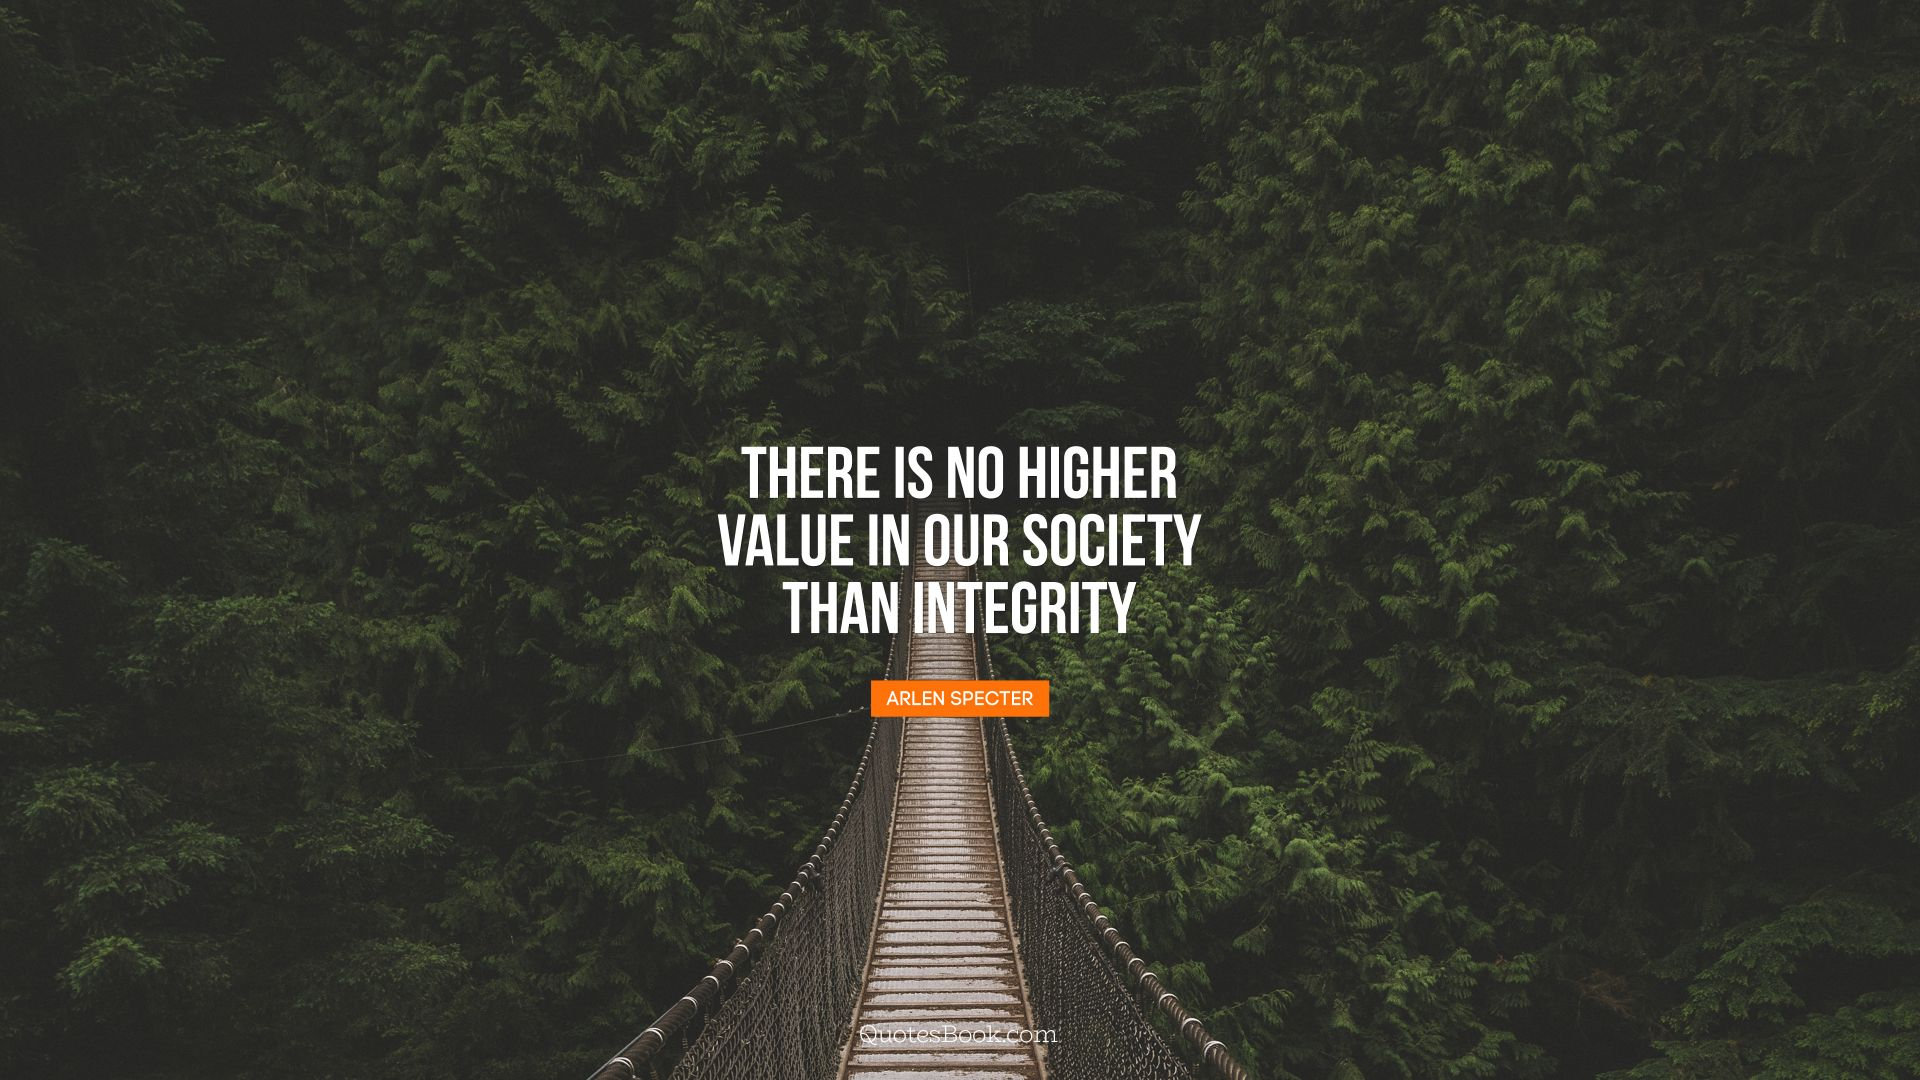 There is no higher value in our society than integrity. - Quote by Arlen Specter